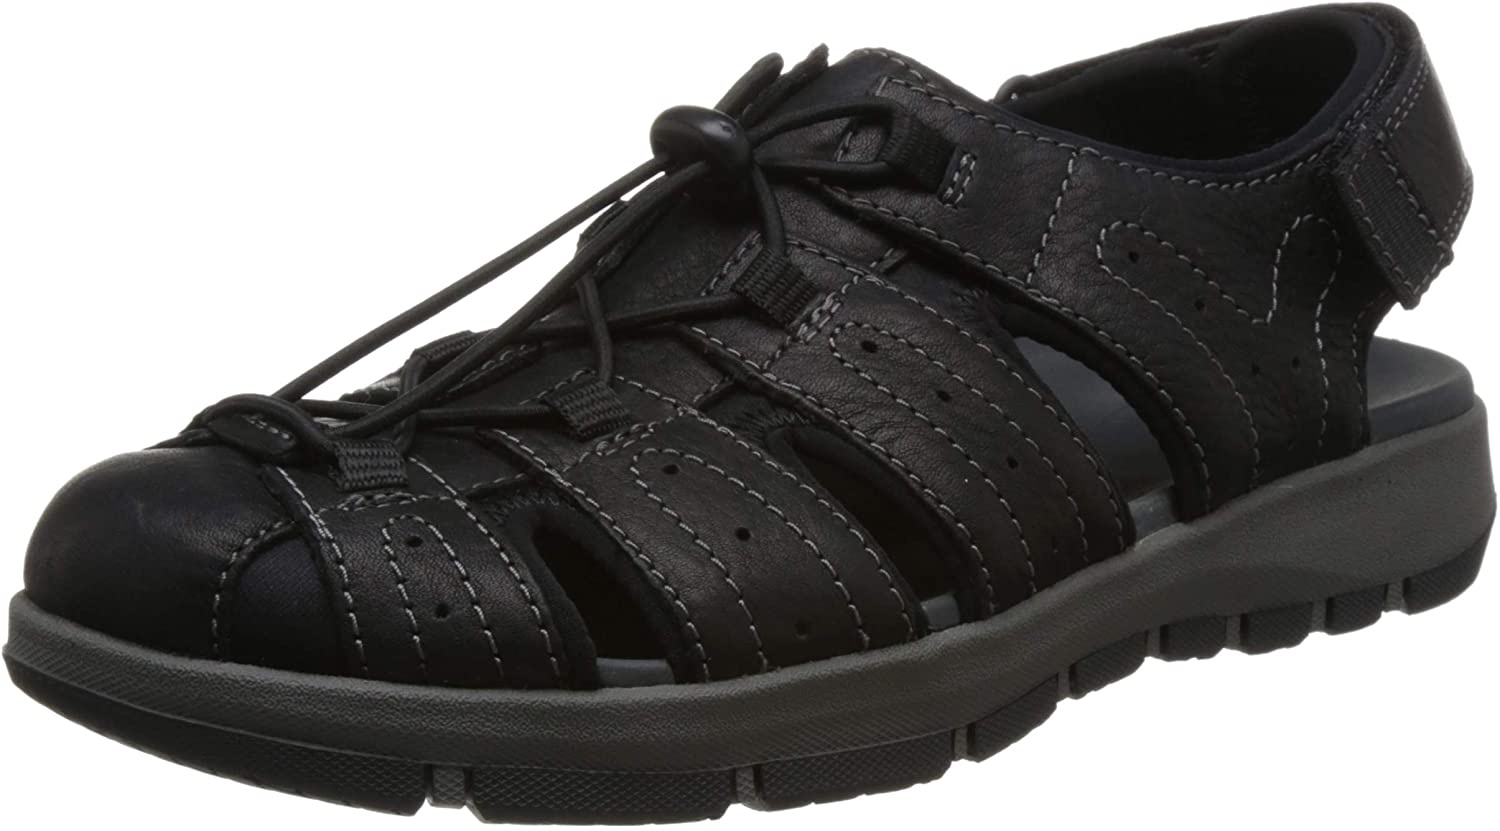 Clarks Men's Brixby Cove Ankle Strap Sandals